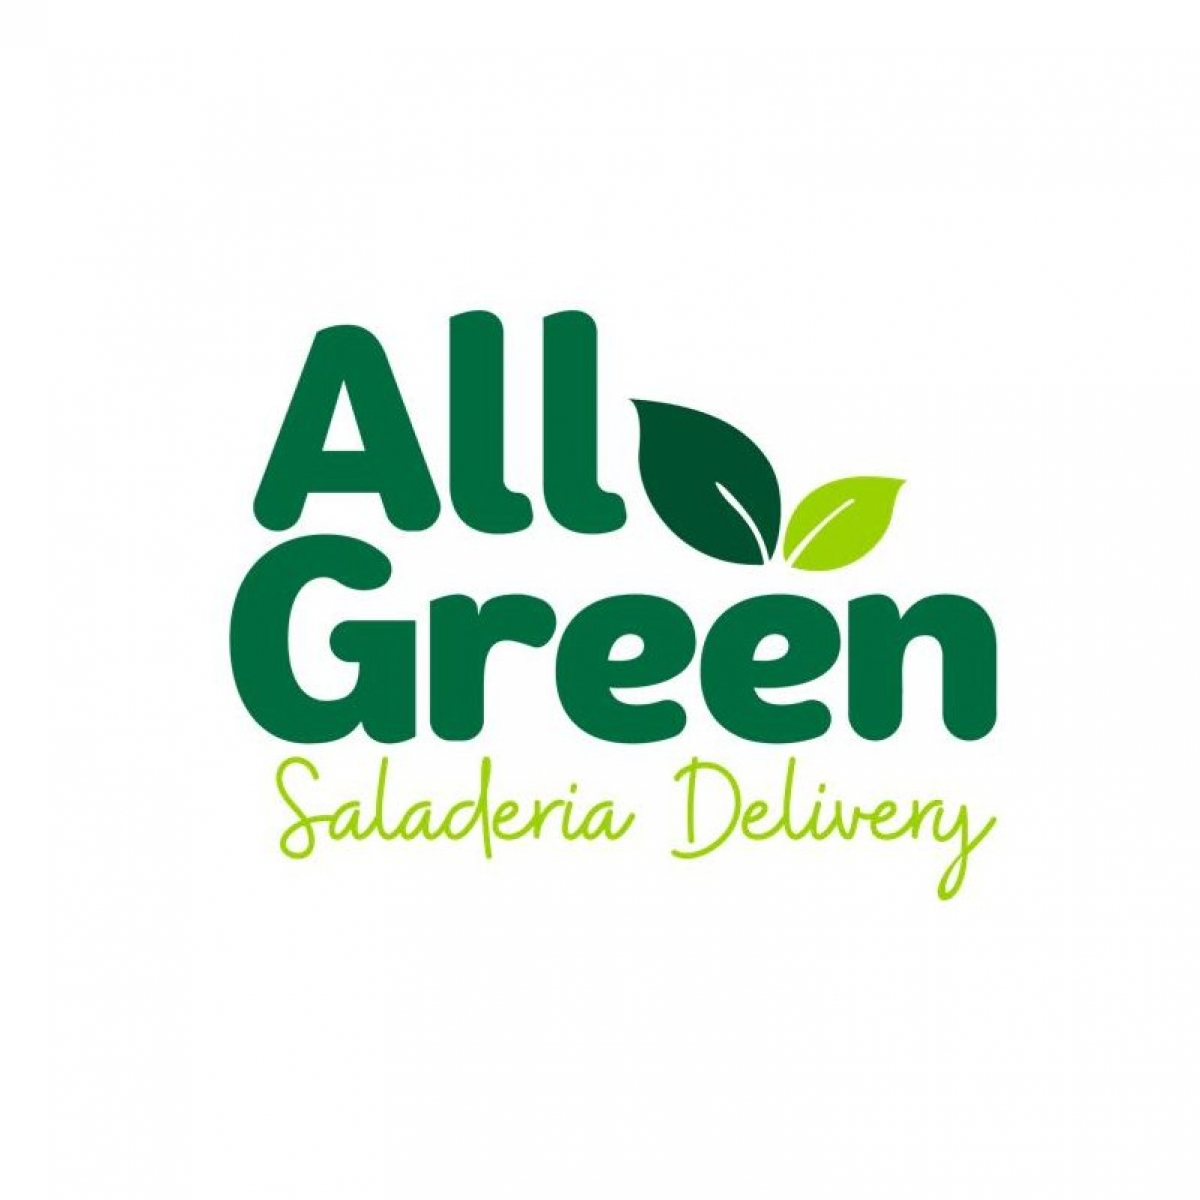 All Green Healthy Delivery